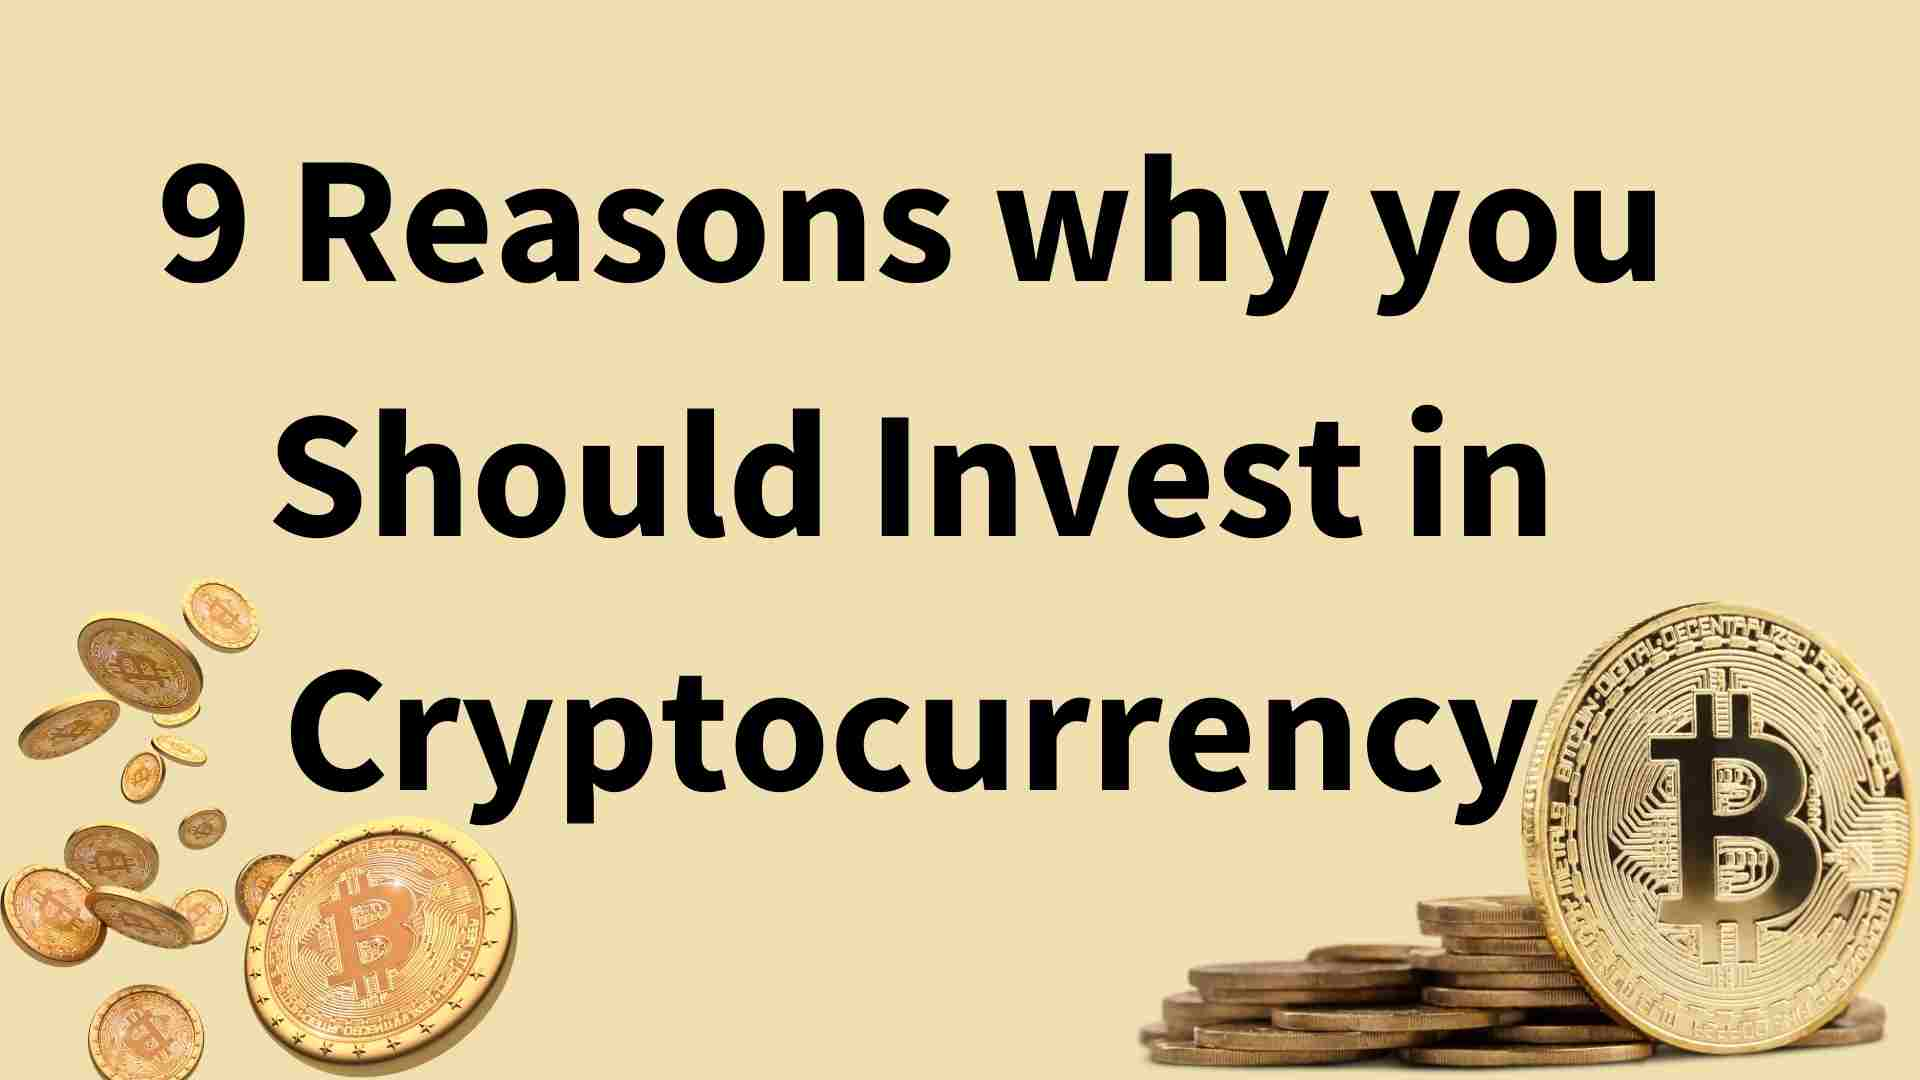 9 Reasons why you Should Invest in Cryptocurrency